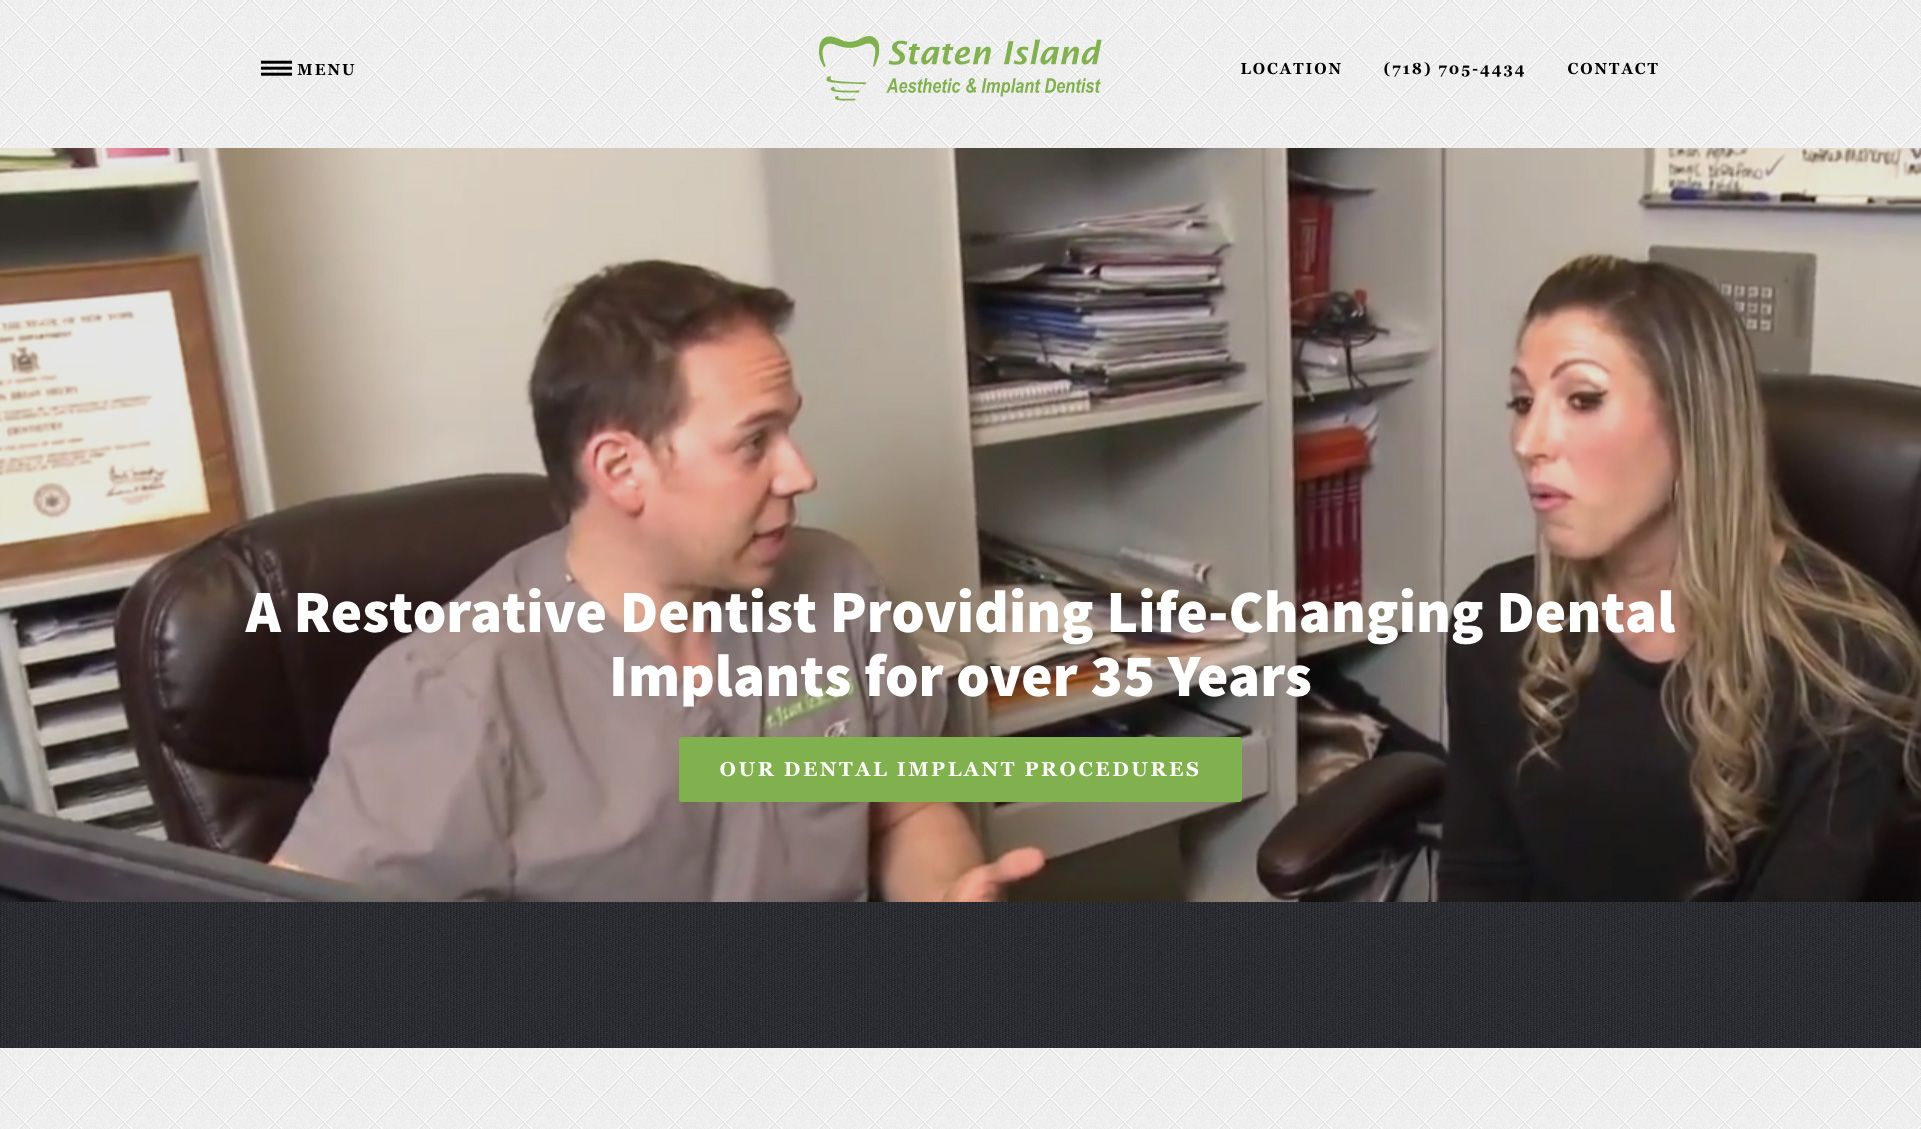 The website of Staten Island Aesthetic & Implant Dentist